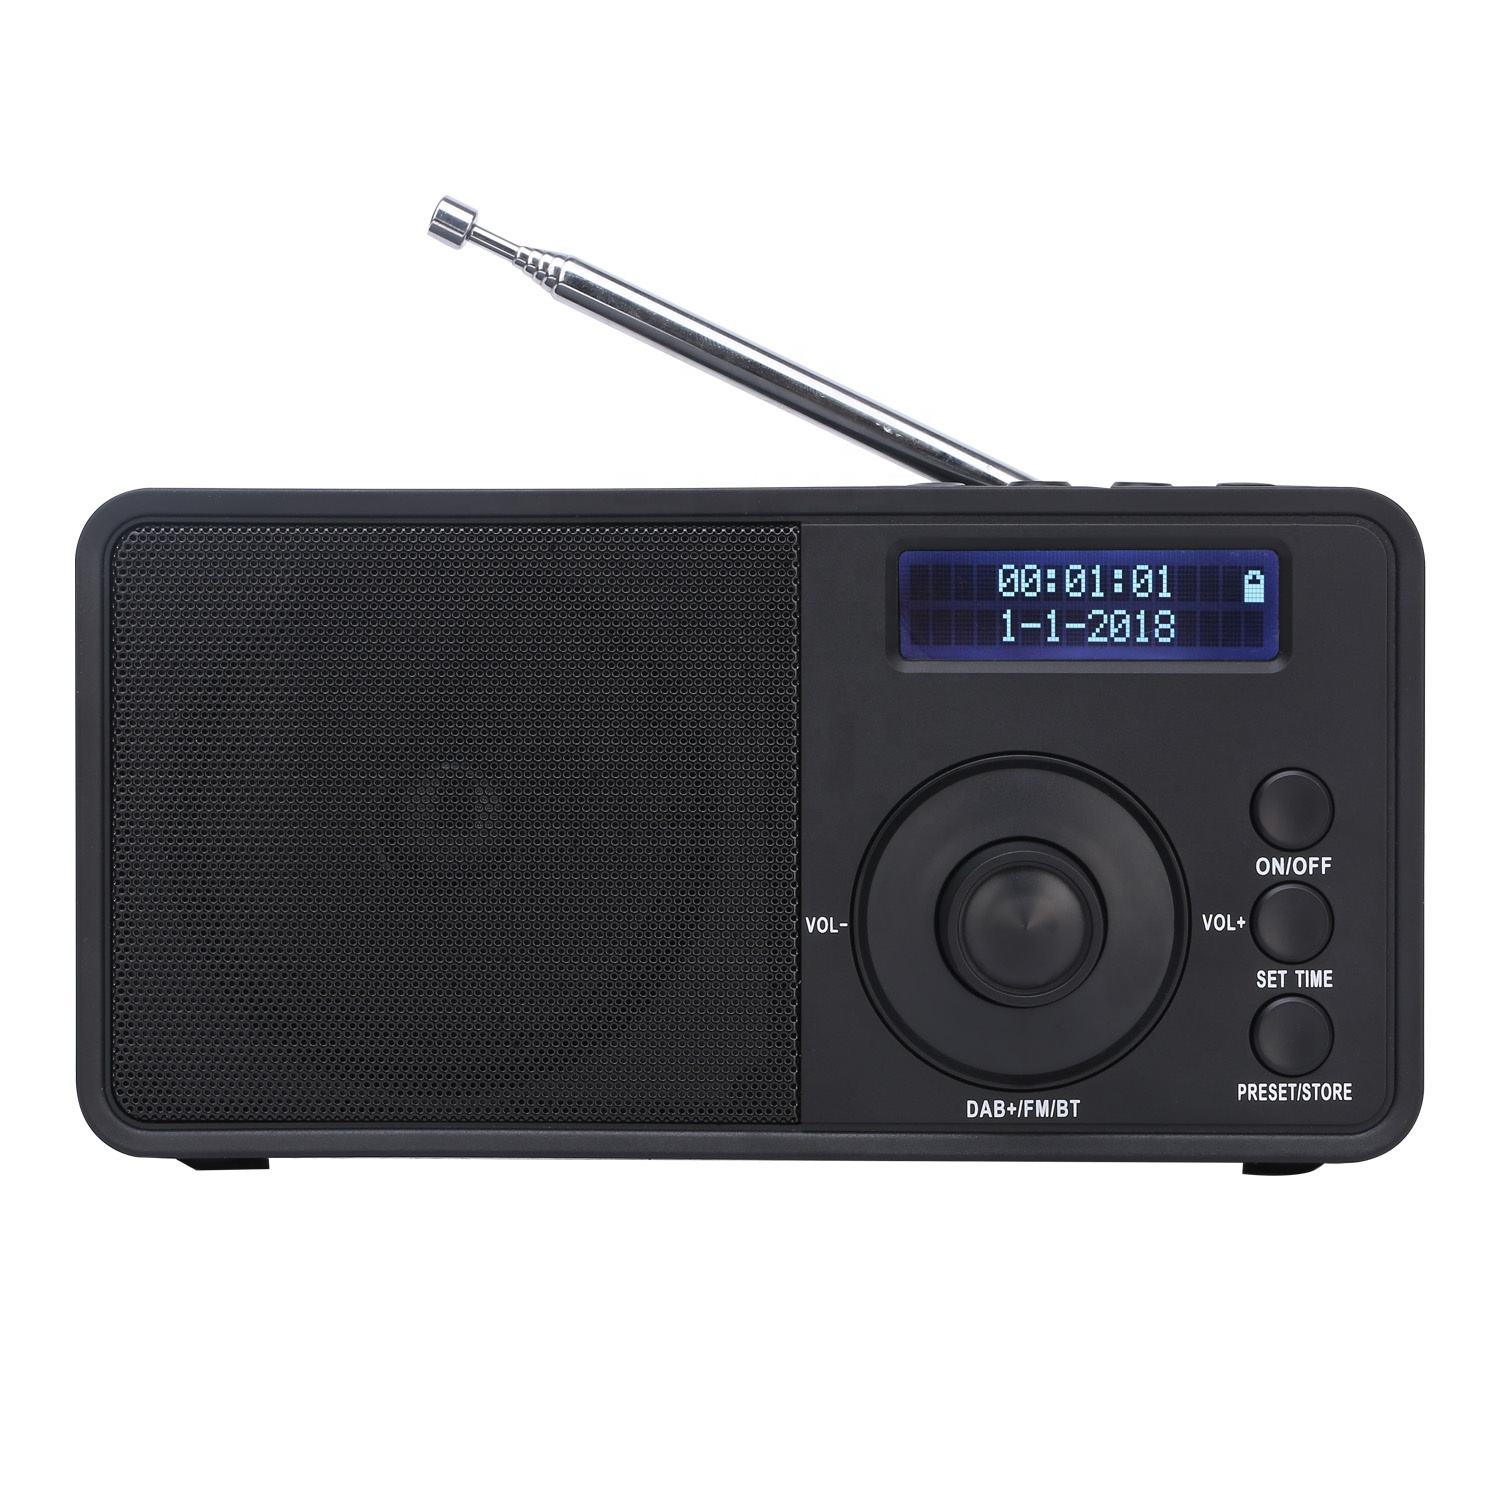 Shenzhen OEM Service Portable Digital Bluetooth DAB+ FM Radio With LCD Display And Speaker